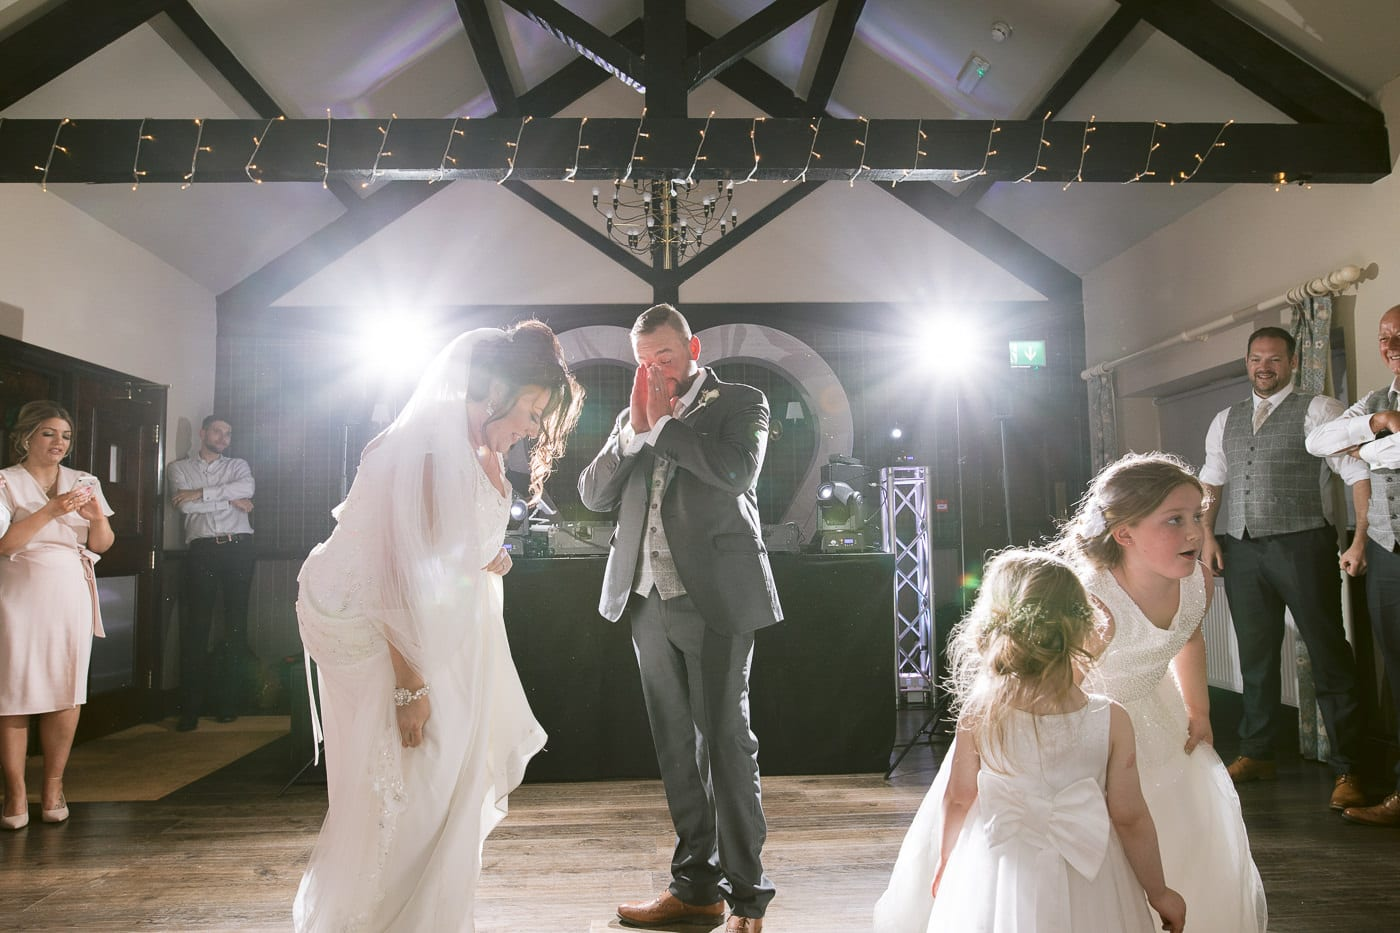 Bride and Groom Wedding Dance in Main Hall Photography Portrait